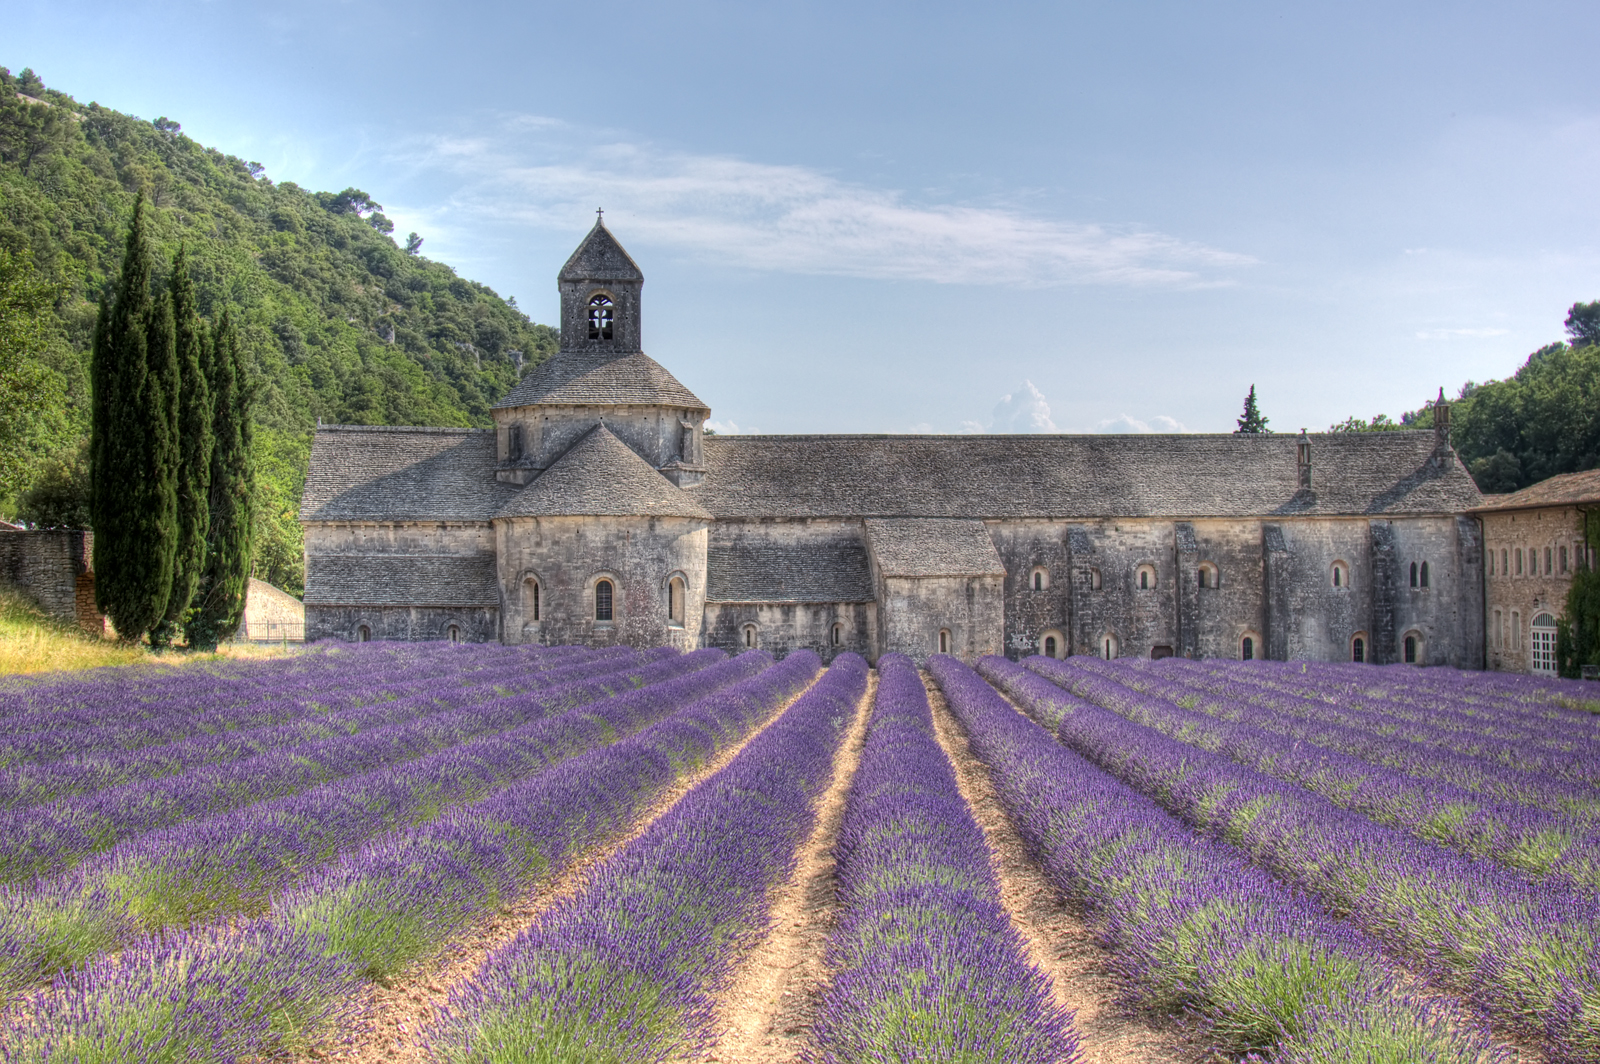 Abbaye de Senanque with lavender - Flickr - Salva Barbera